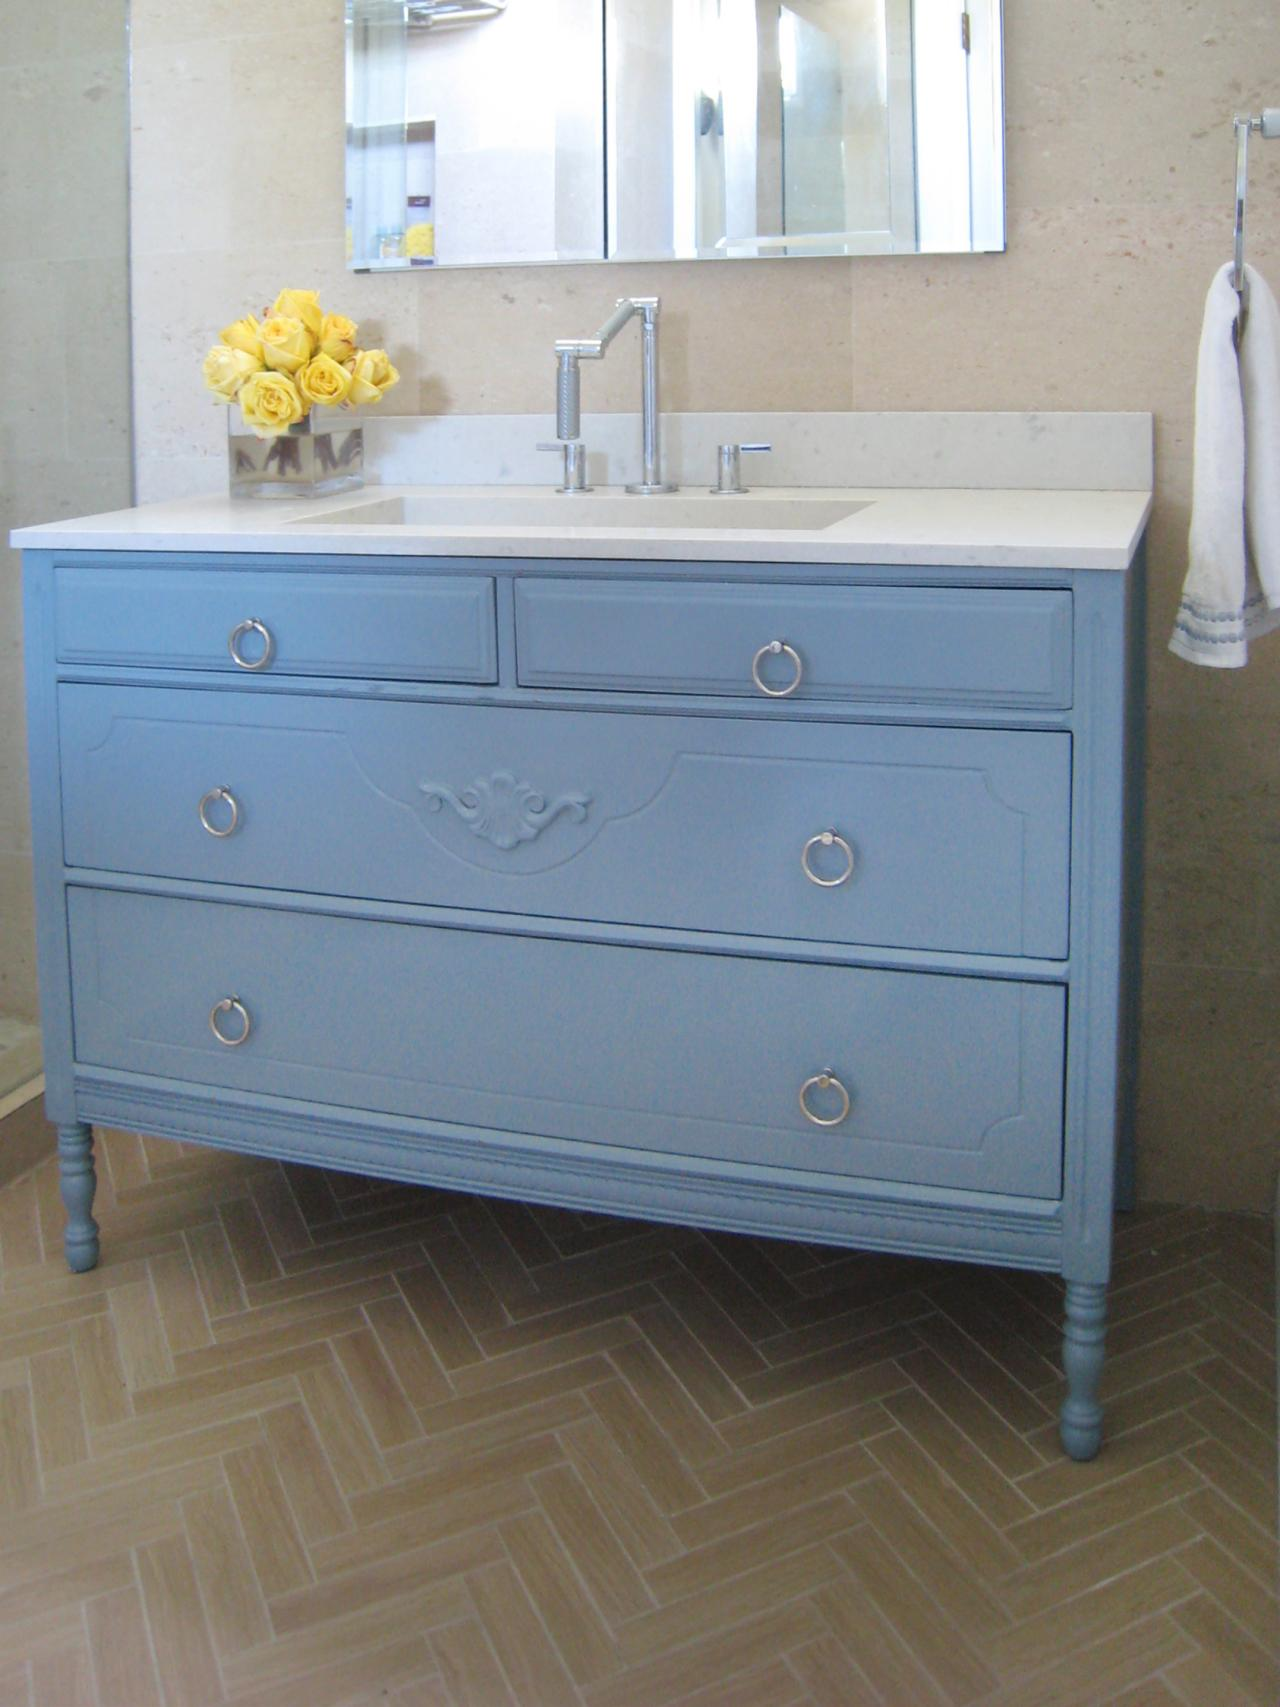 Bathroom sink cabinets ideas - How To Turn A Cabinet Into A Bathroom Vanity